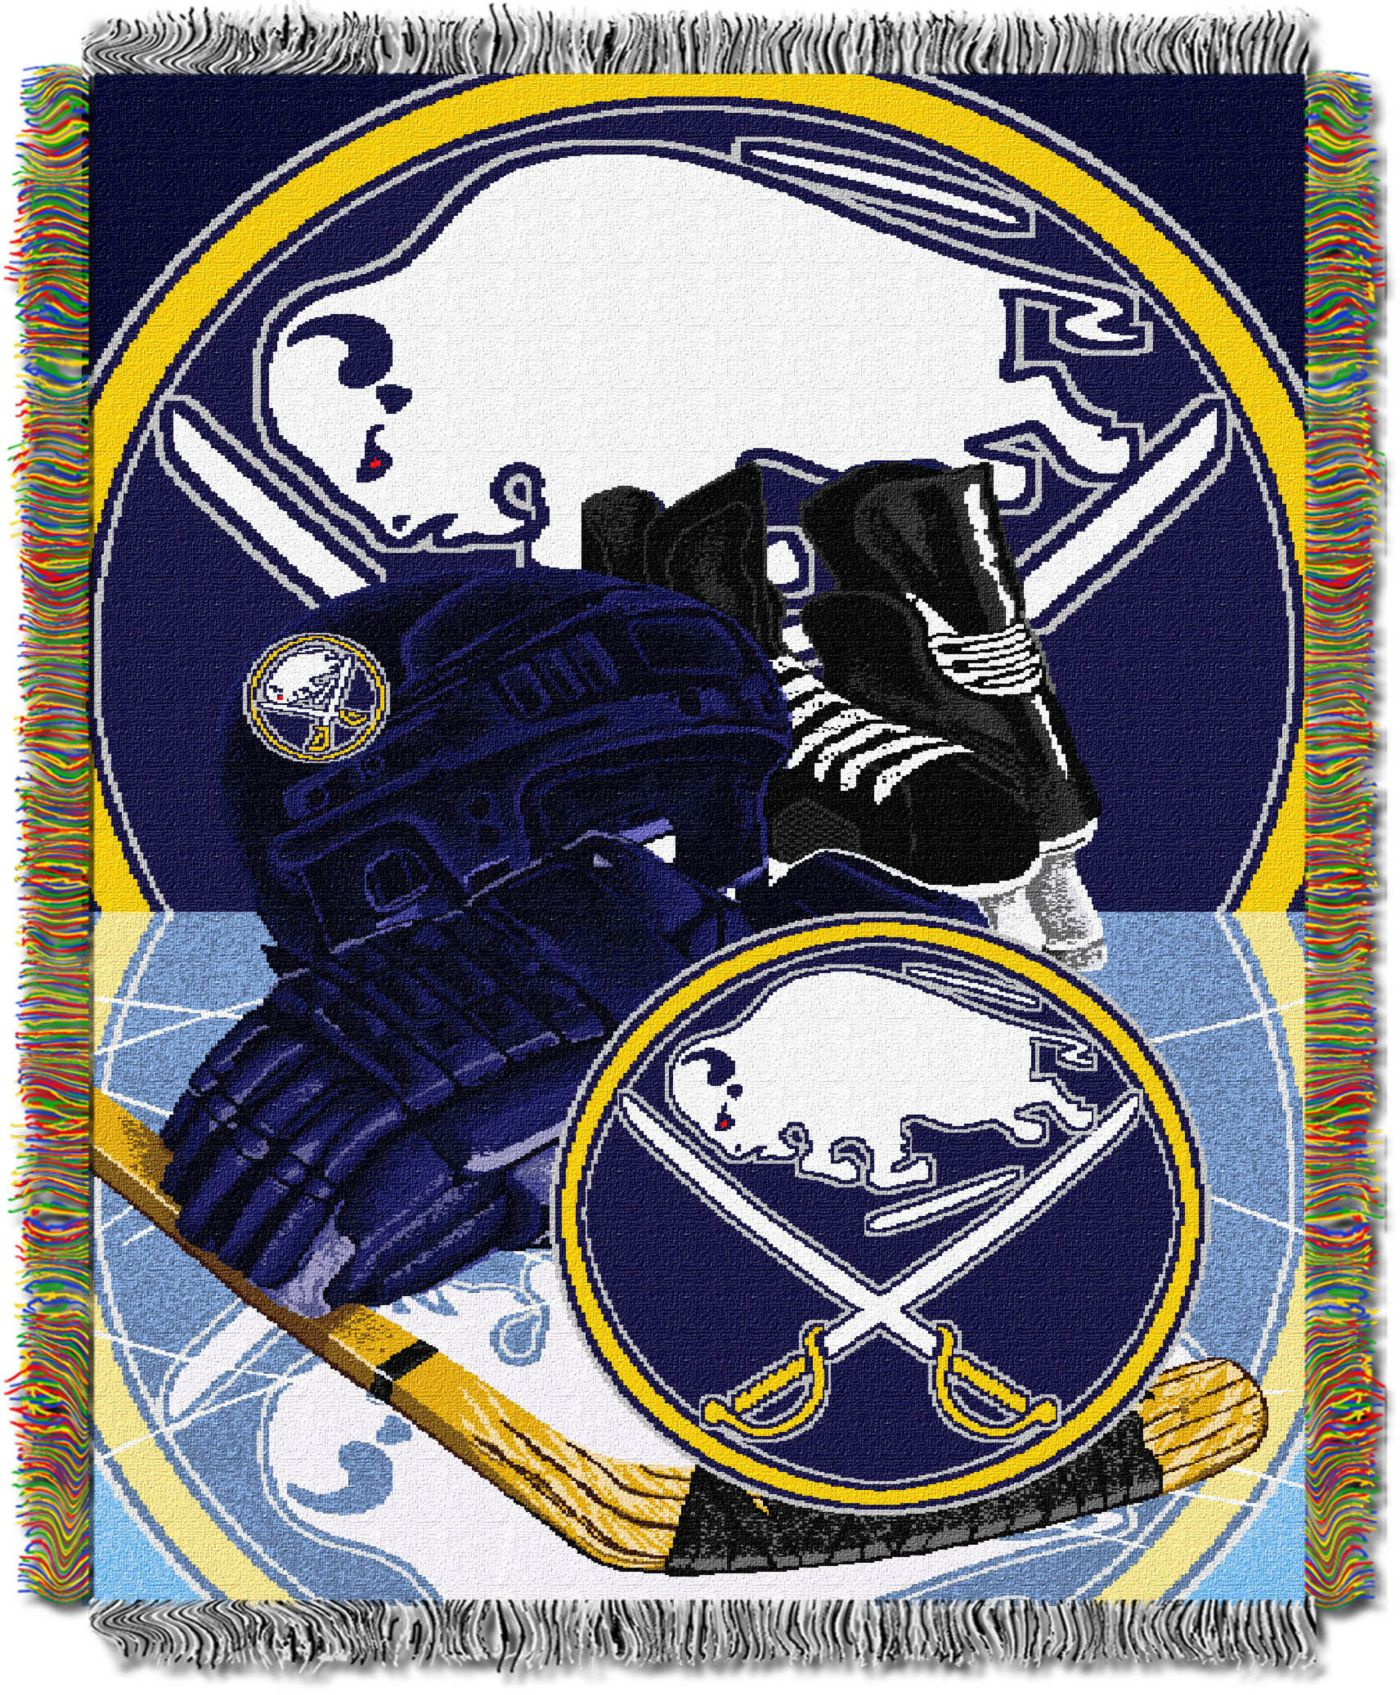 Northwest Buffalo Sabres 48 in x 60 in Home Ice Advantage Tapestry Throw Blanket